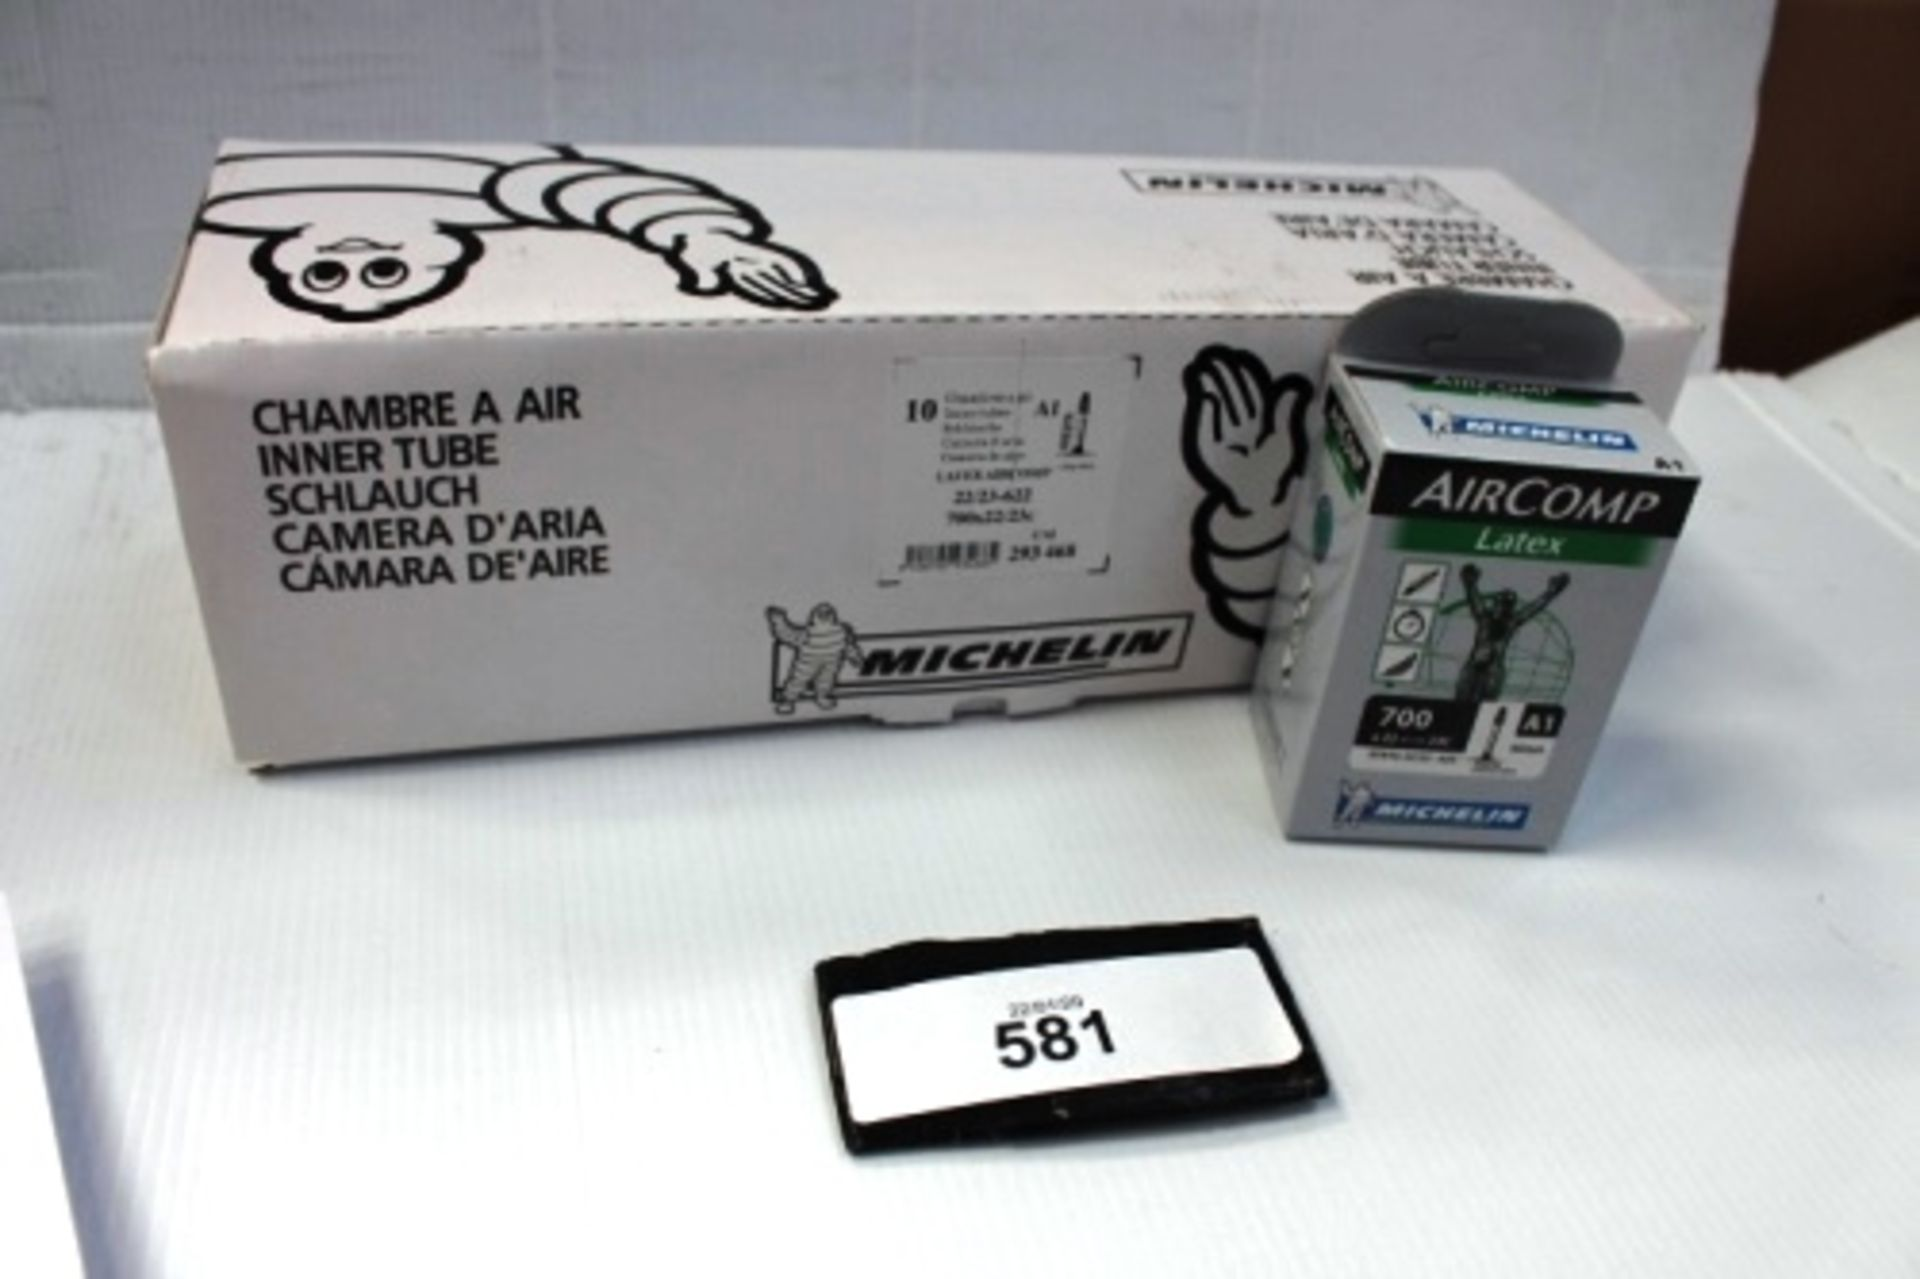 Lot 581 - 10 x Michelin Air Comp Latex 60mm 700 x 22/23C inner tubes - New in box (ES13)